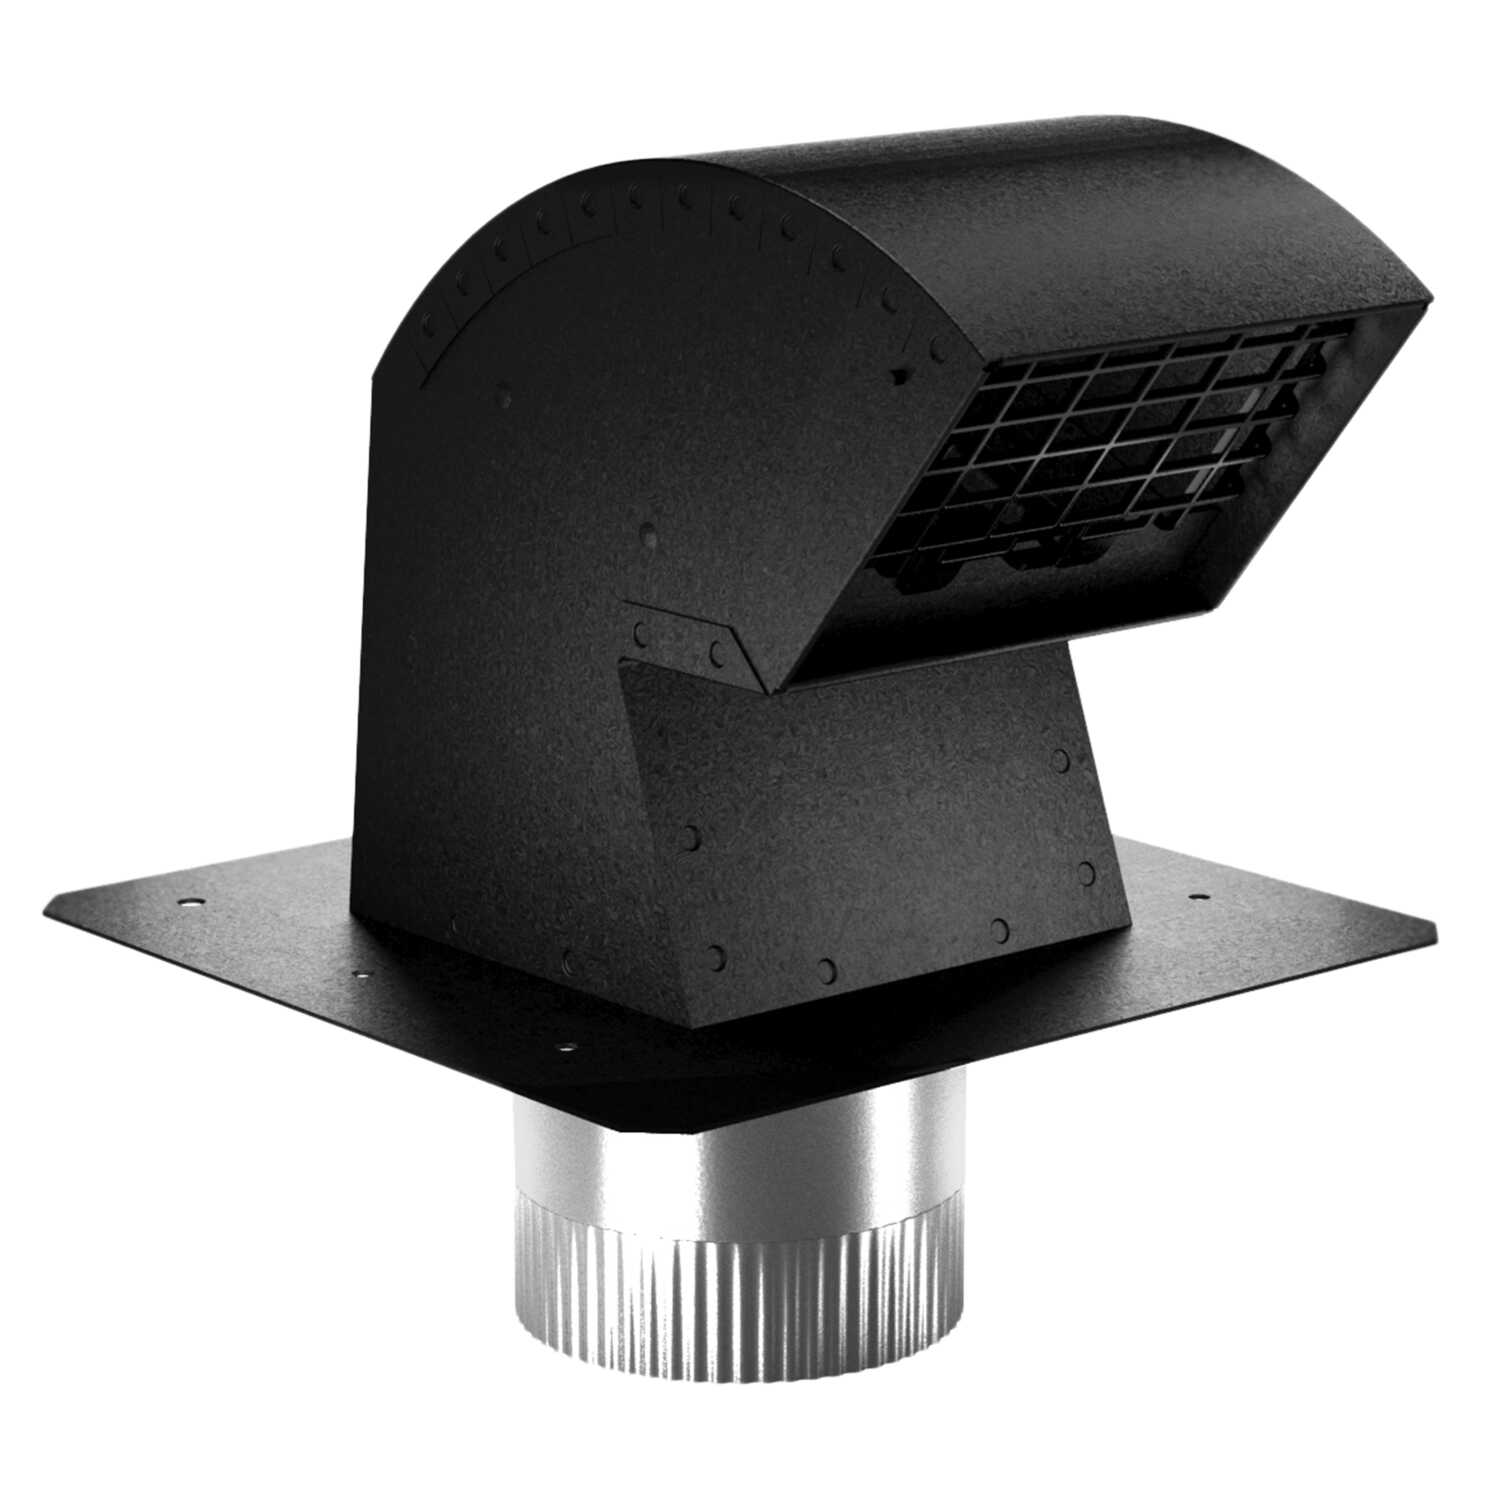 Imperial Manufacturing  R2  9 in. L x 4 in. Dia. Black/Silver  Aluminum  Roof Cap with Collar